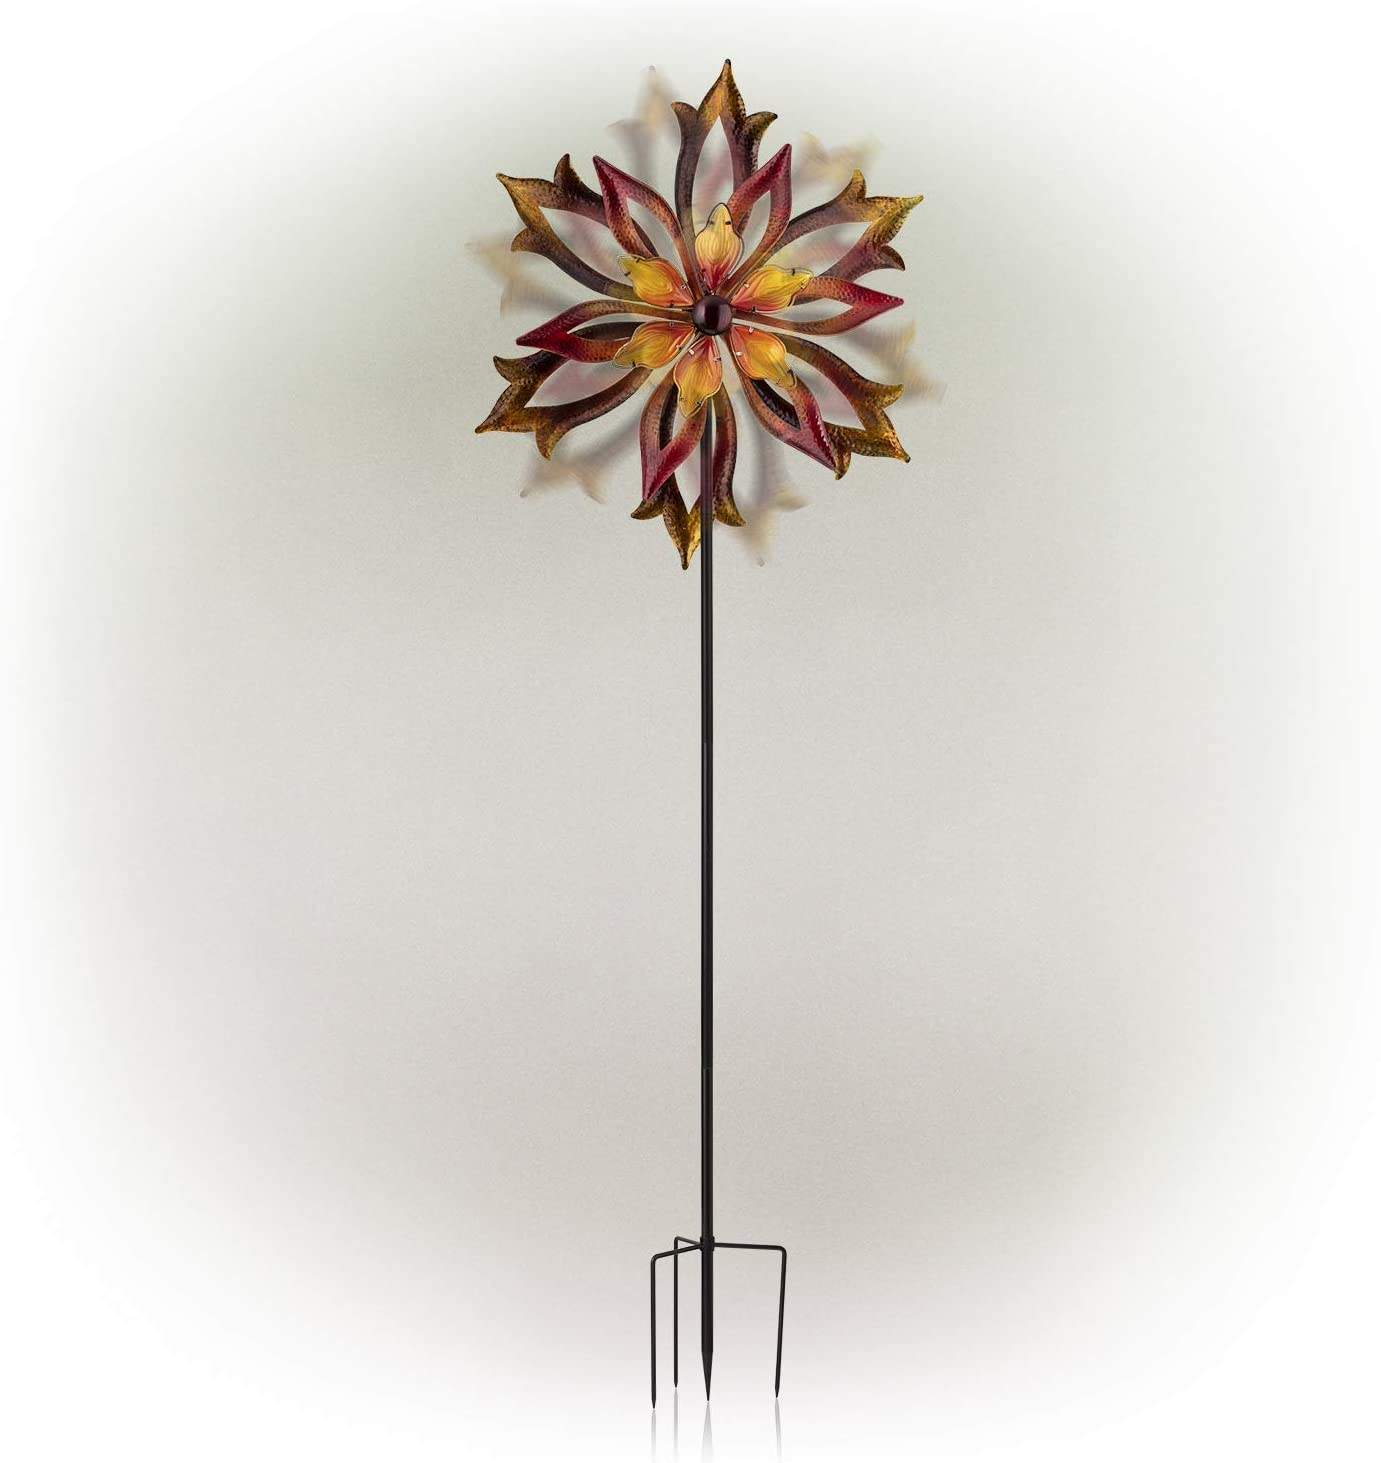 Alpine Corporation KPP426 Double-Sided Flame Windmill Stake-Kinetic Spinner Outdoor Yard Art Decor, 96-Inch, Multicolor